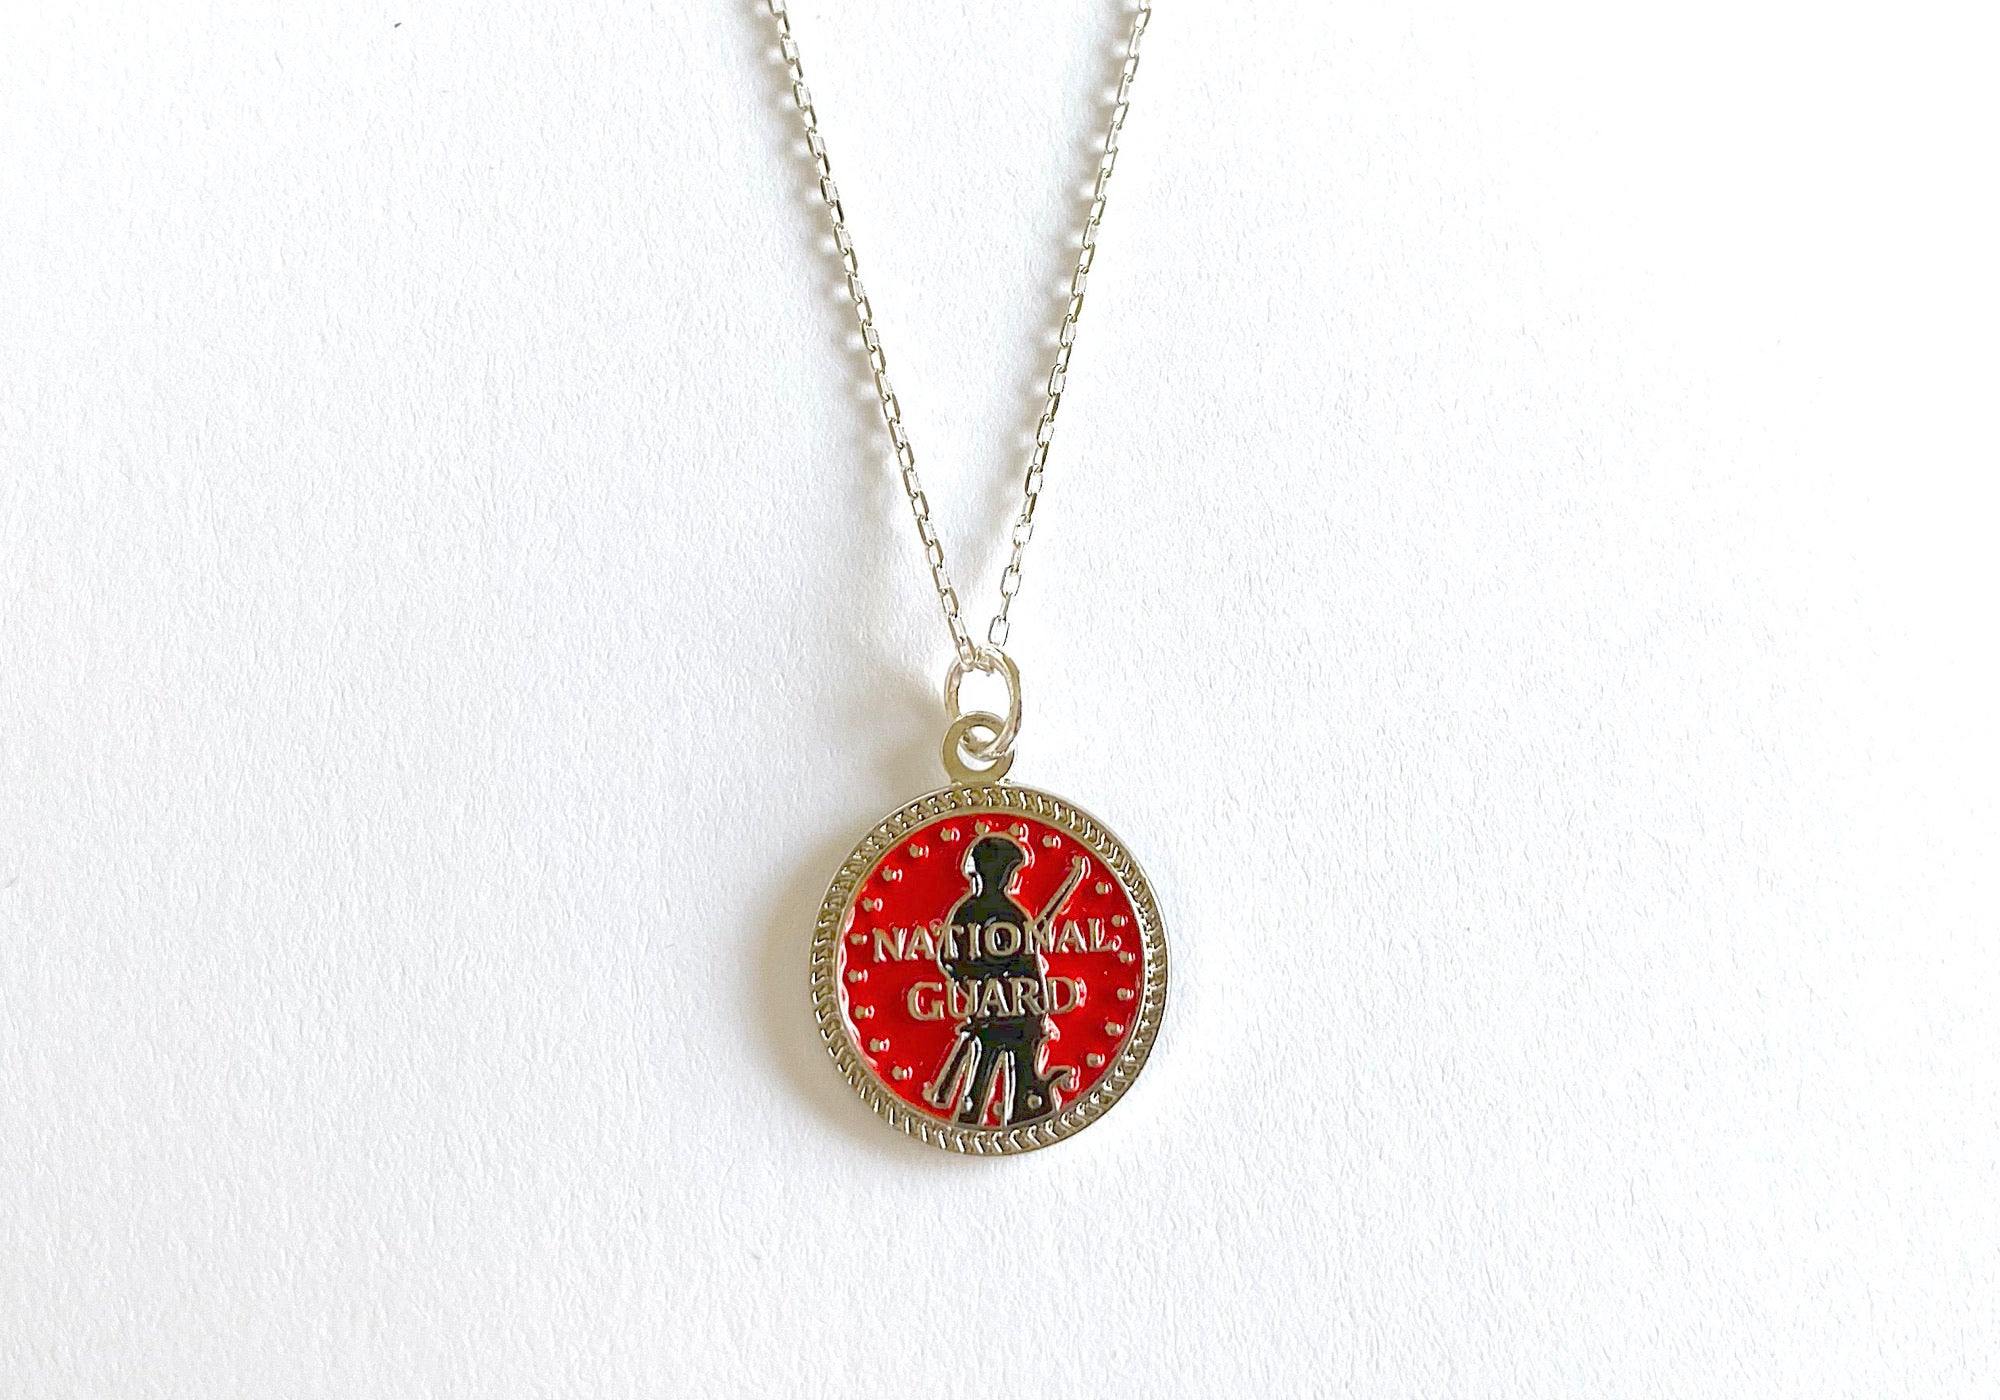 National Guard Charm Necklace